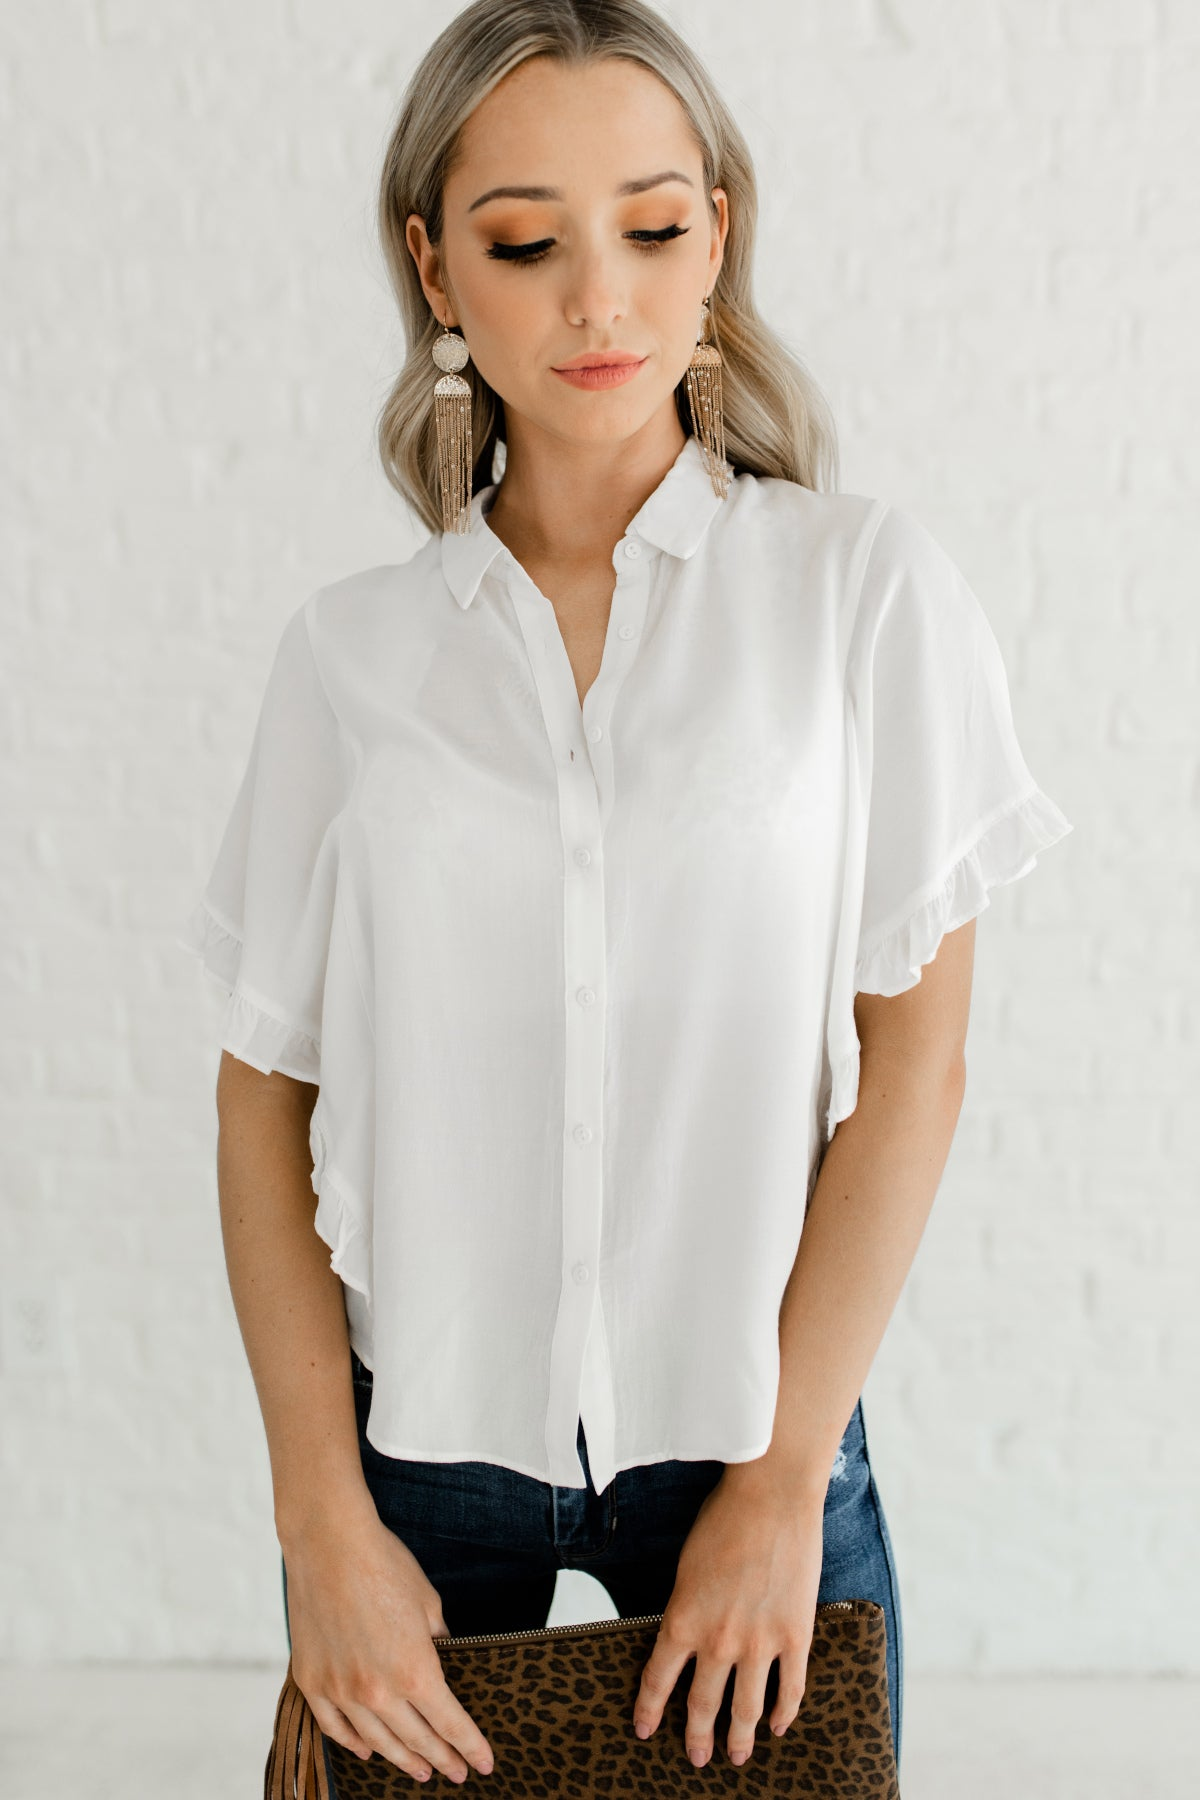 White Button Up Shirt Collar Cute Business Casual for Women Ruffle Tops